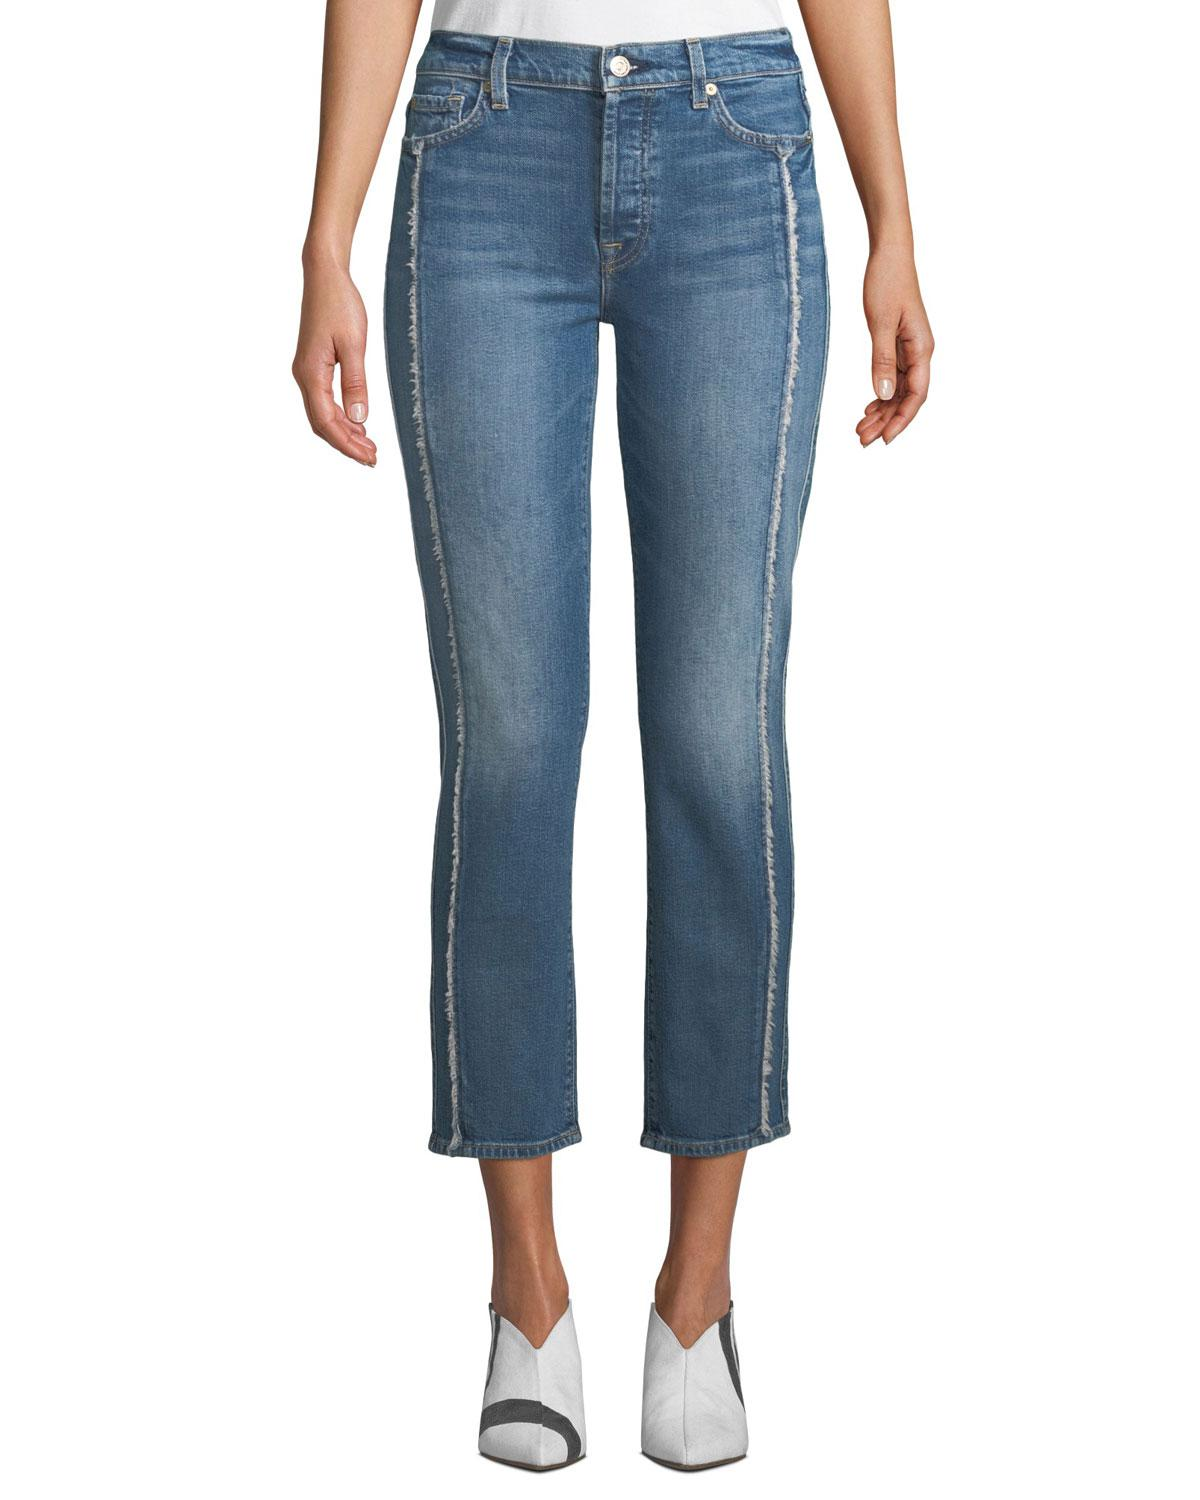 5a8a6f94acde 7 For All Mankind. Women's Black Edie Cropped Straight-leg Jeans ...